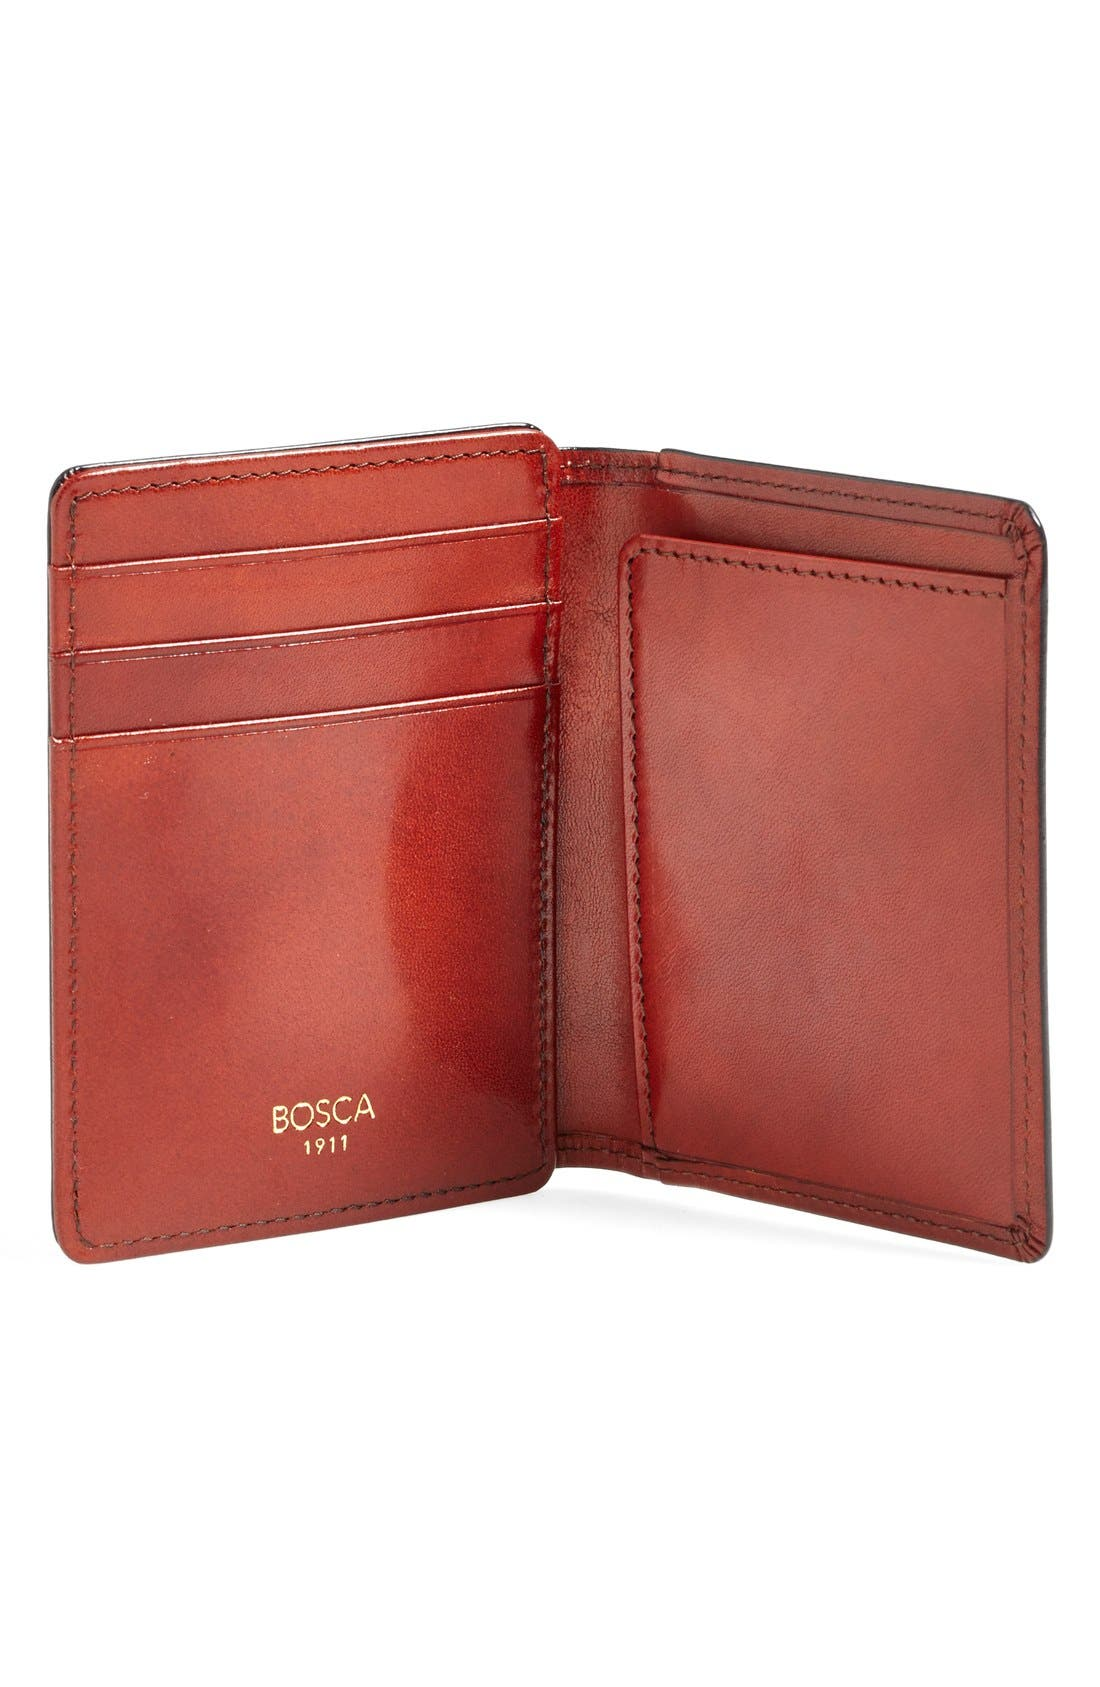 'Old Leather' Front Pocket ID Wallet,                             Alternate thumbnail 2, color,                             COGNAC